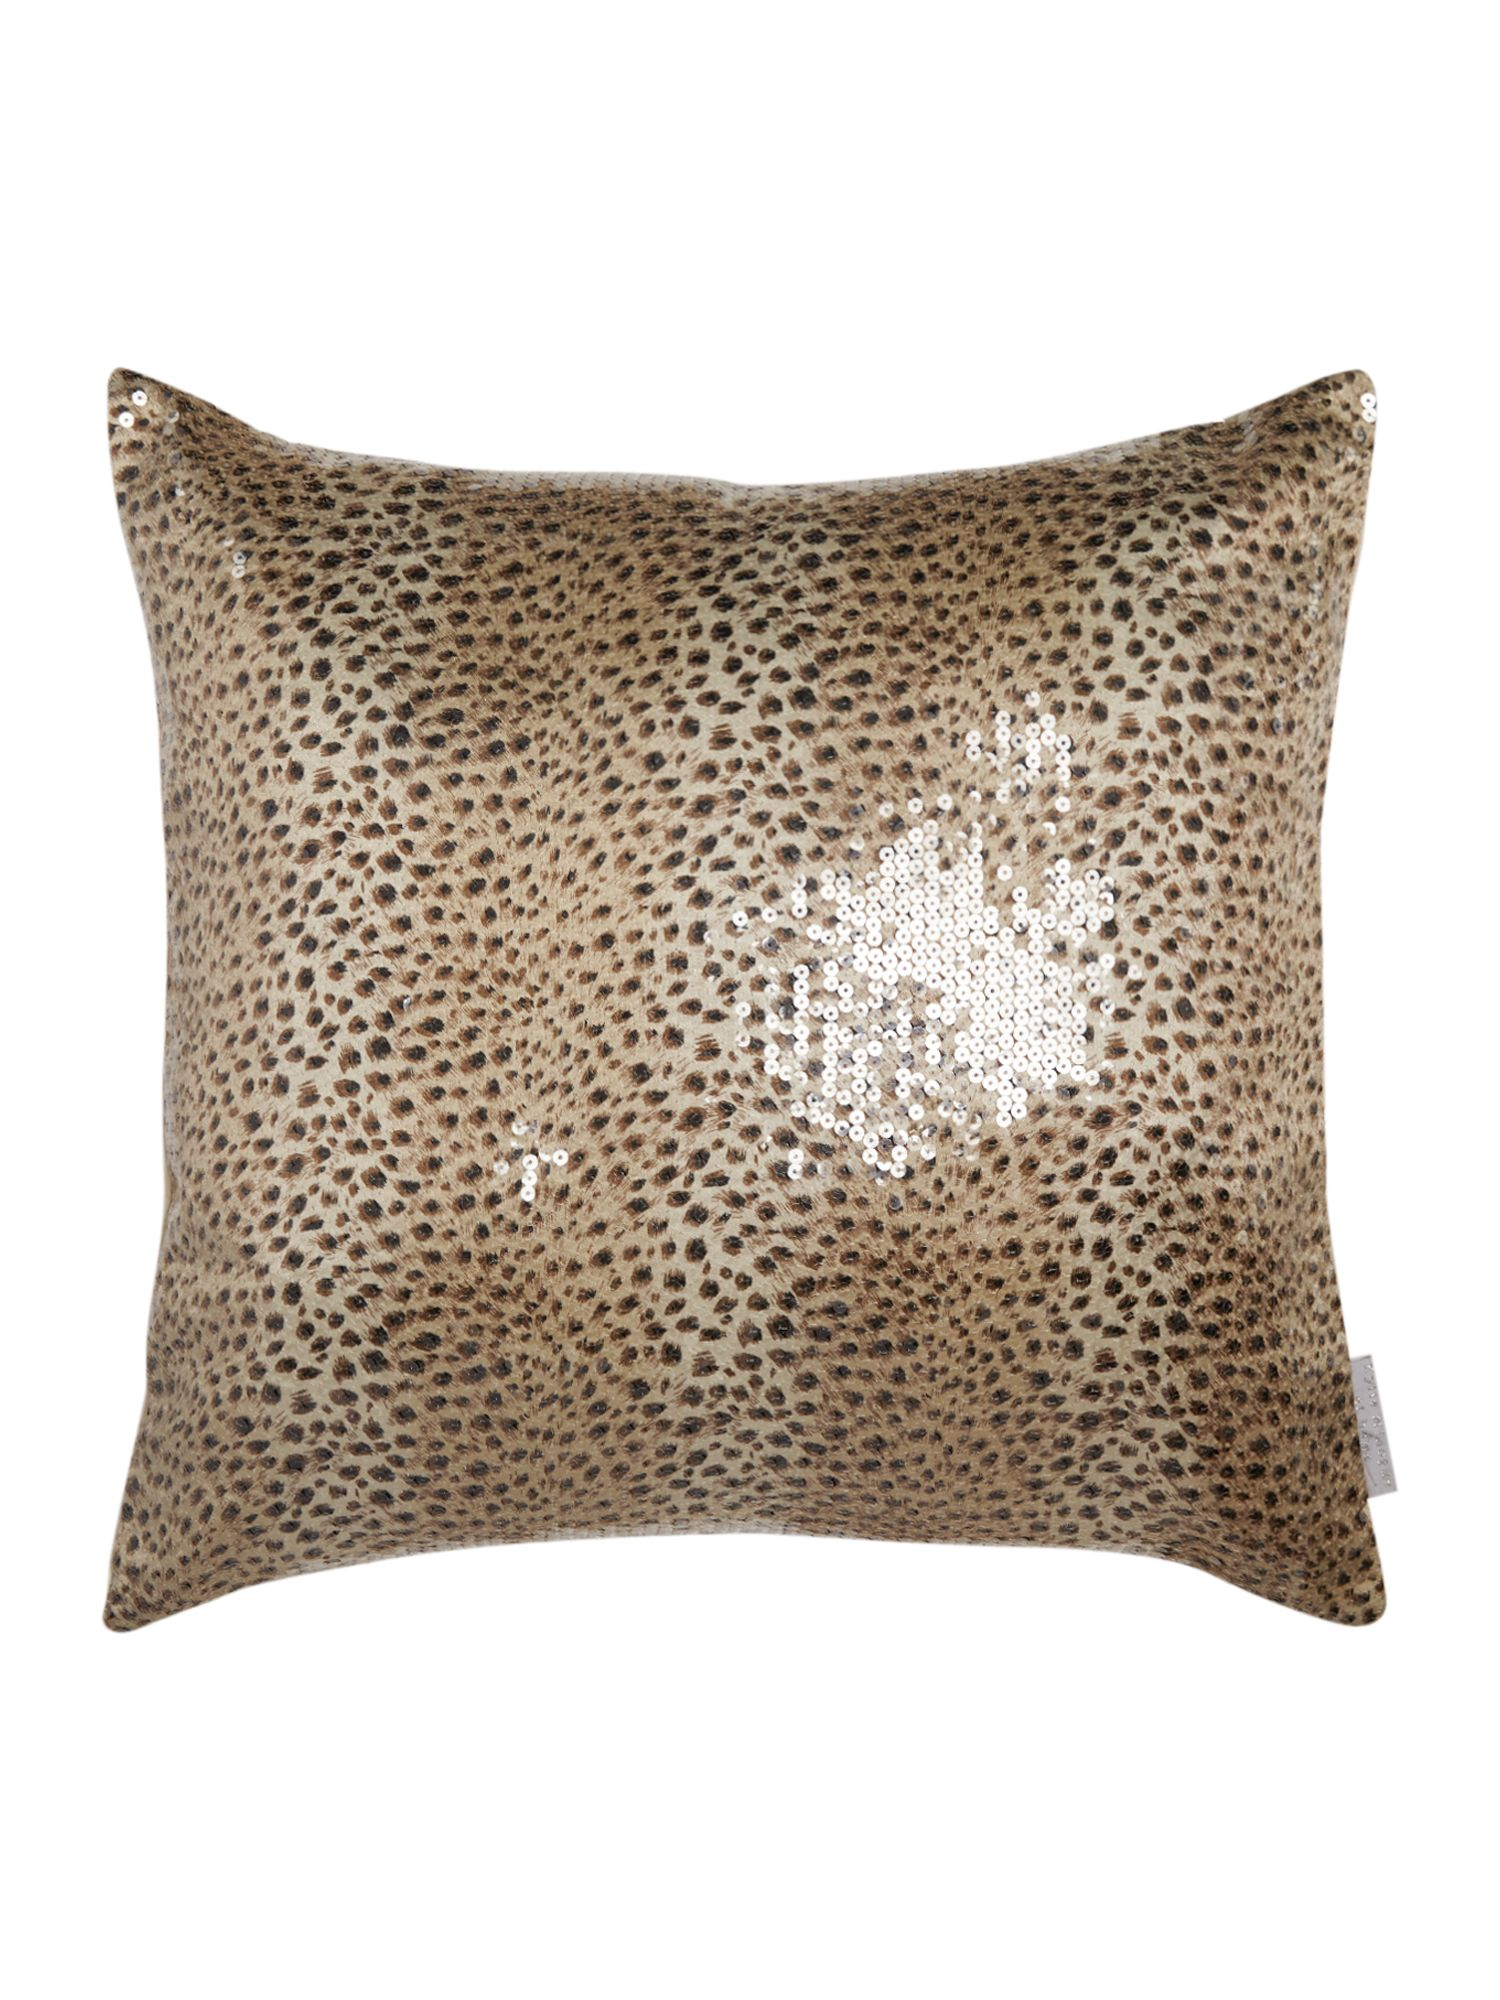 Leopard sequin square cushion